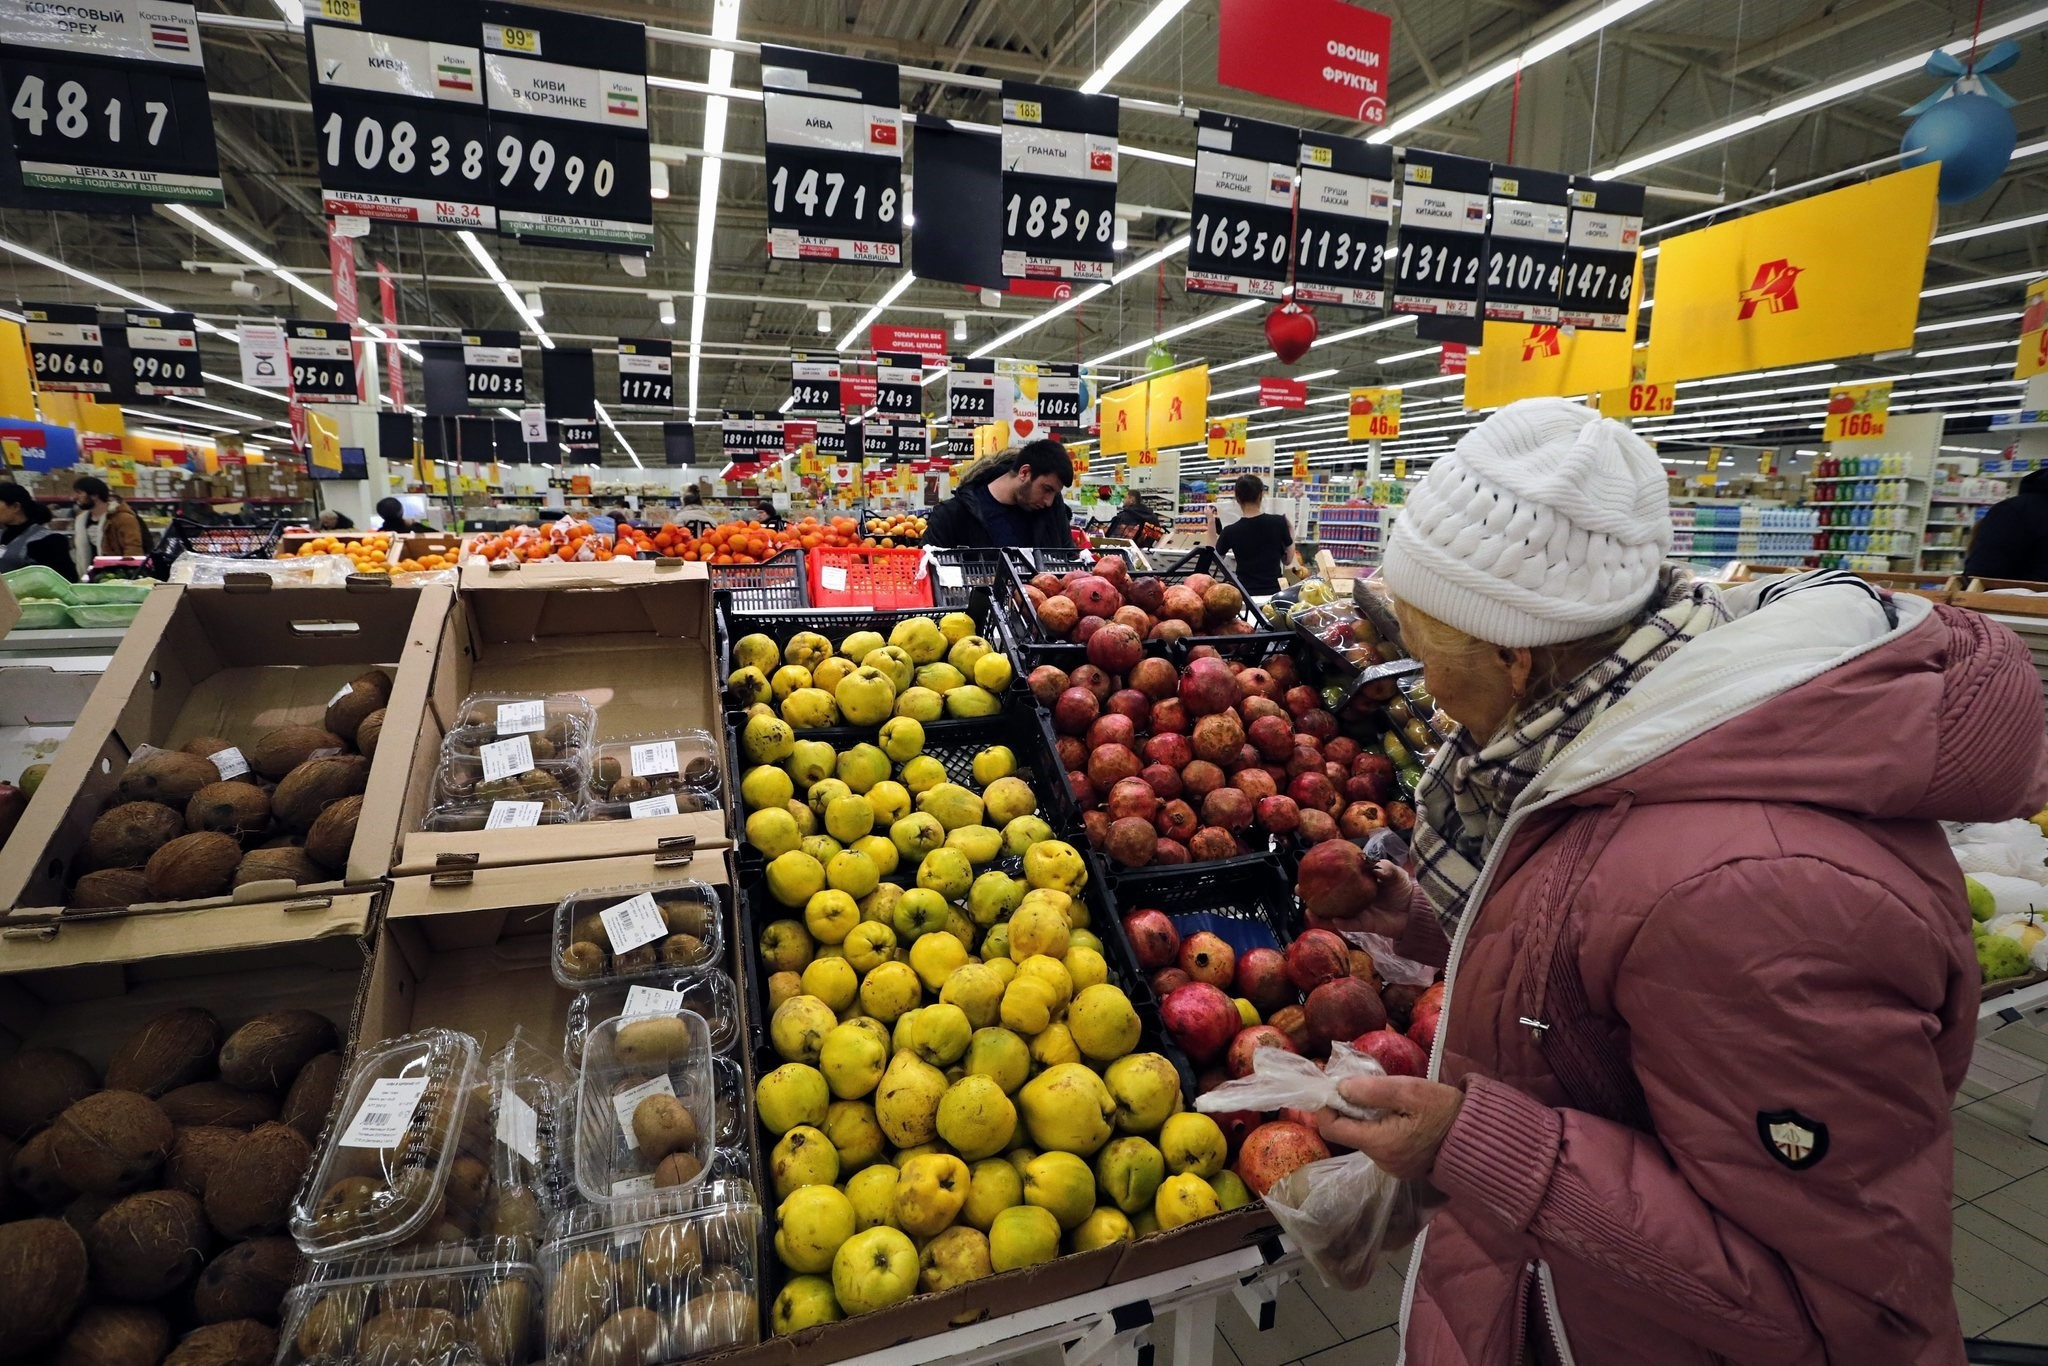 A Russian woman chooses Turkish fruits at a supermarket in St. Petersburg, Russia, 02 December 2015. (EPA Photo)